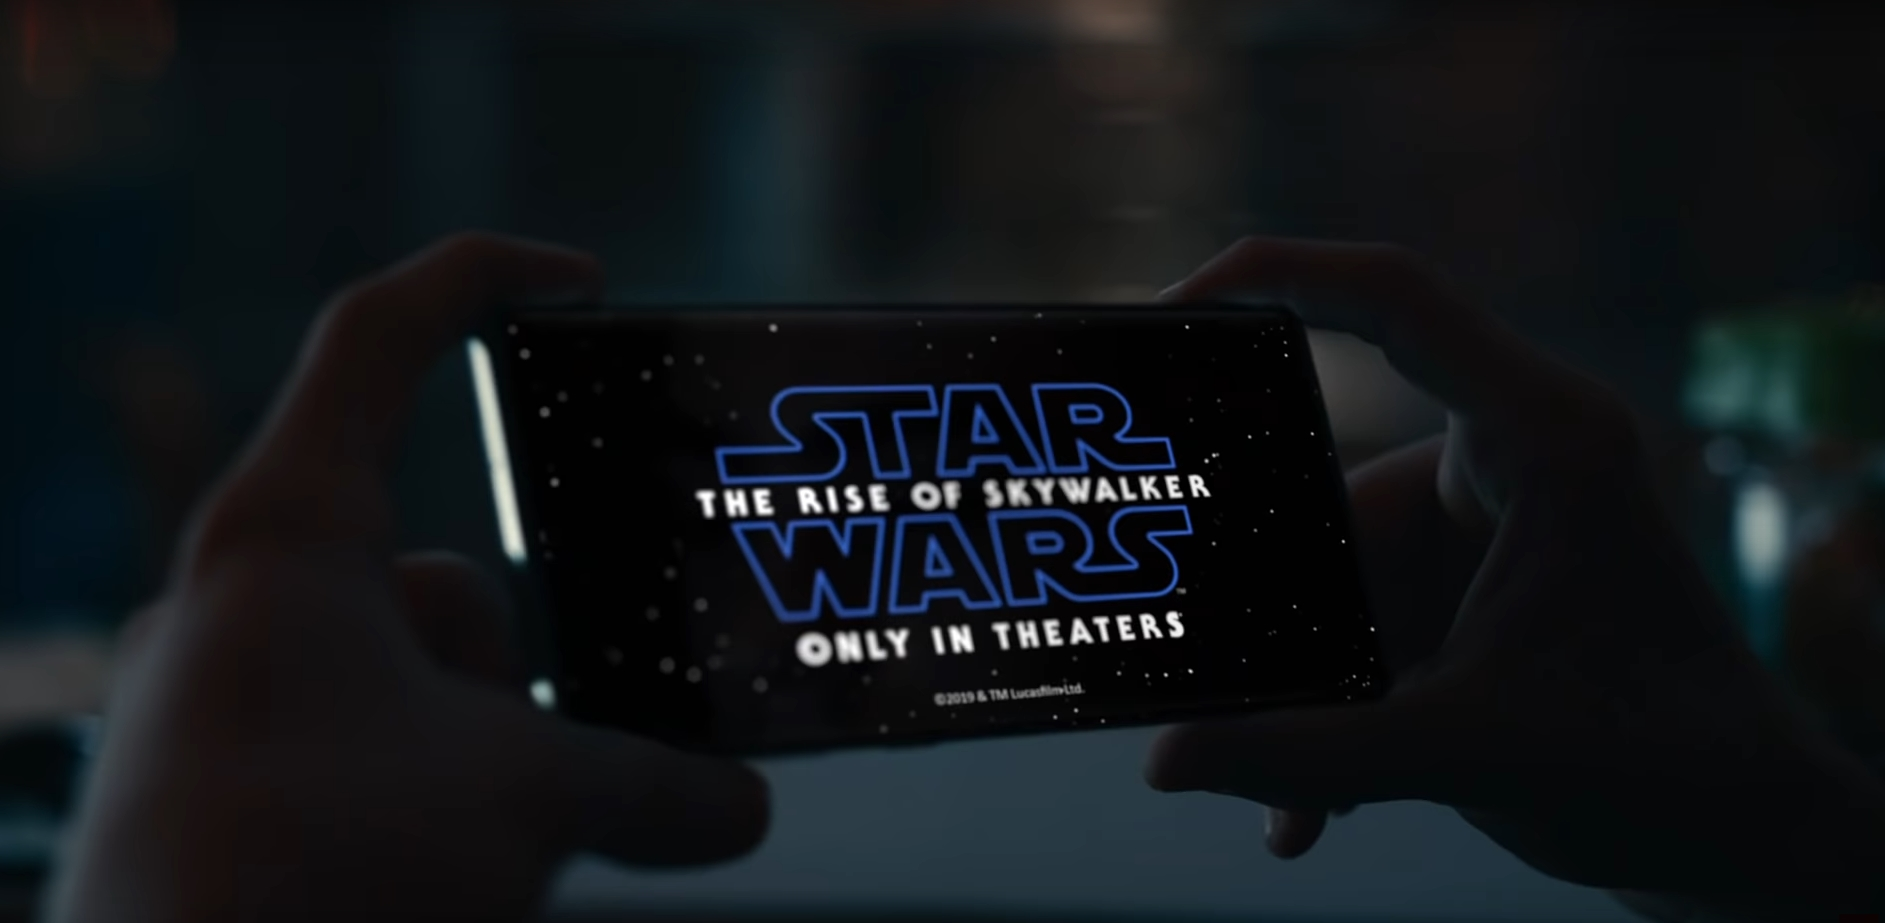 Samsung starts its collaboration with Lucasfilm in advence of the theatrical release of Star Wars: The Rise of Skywalker